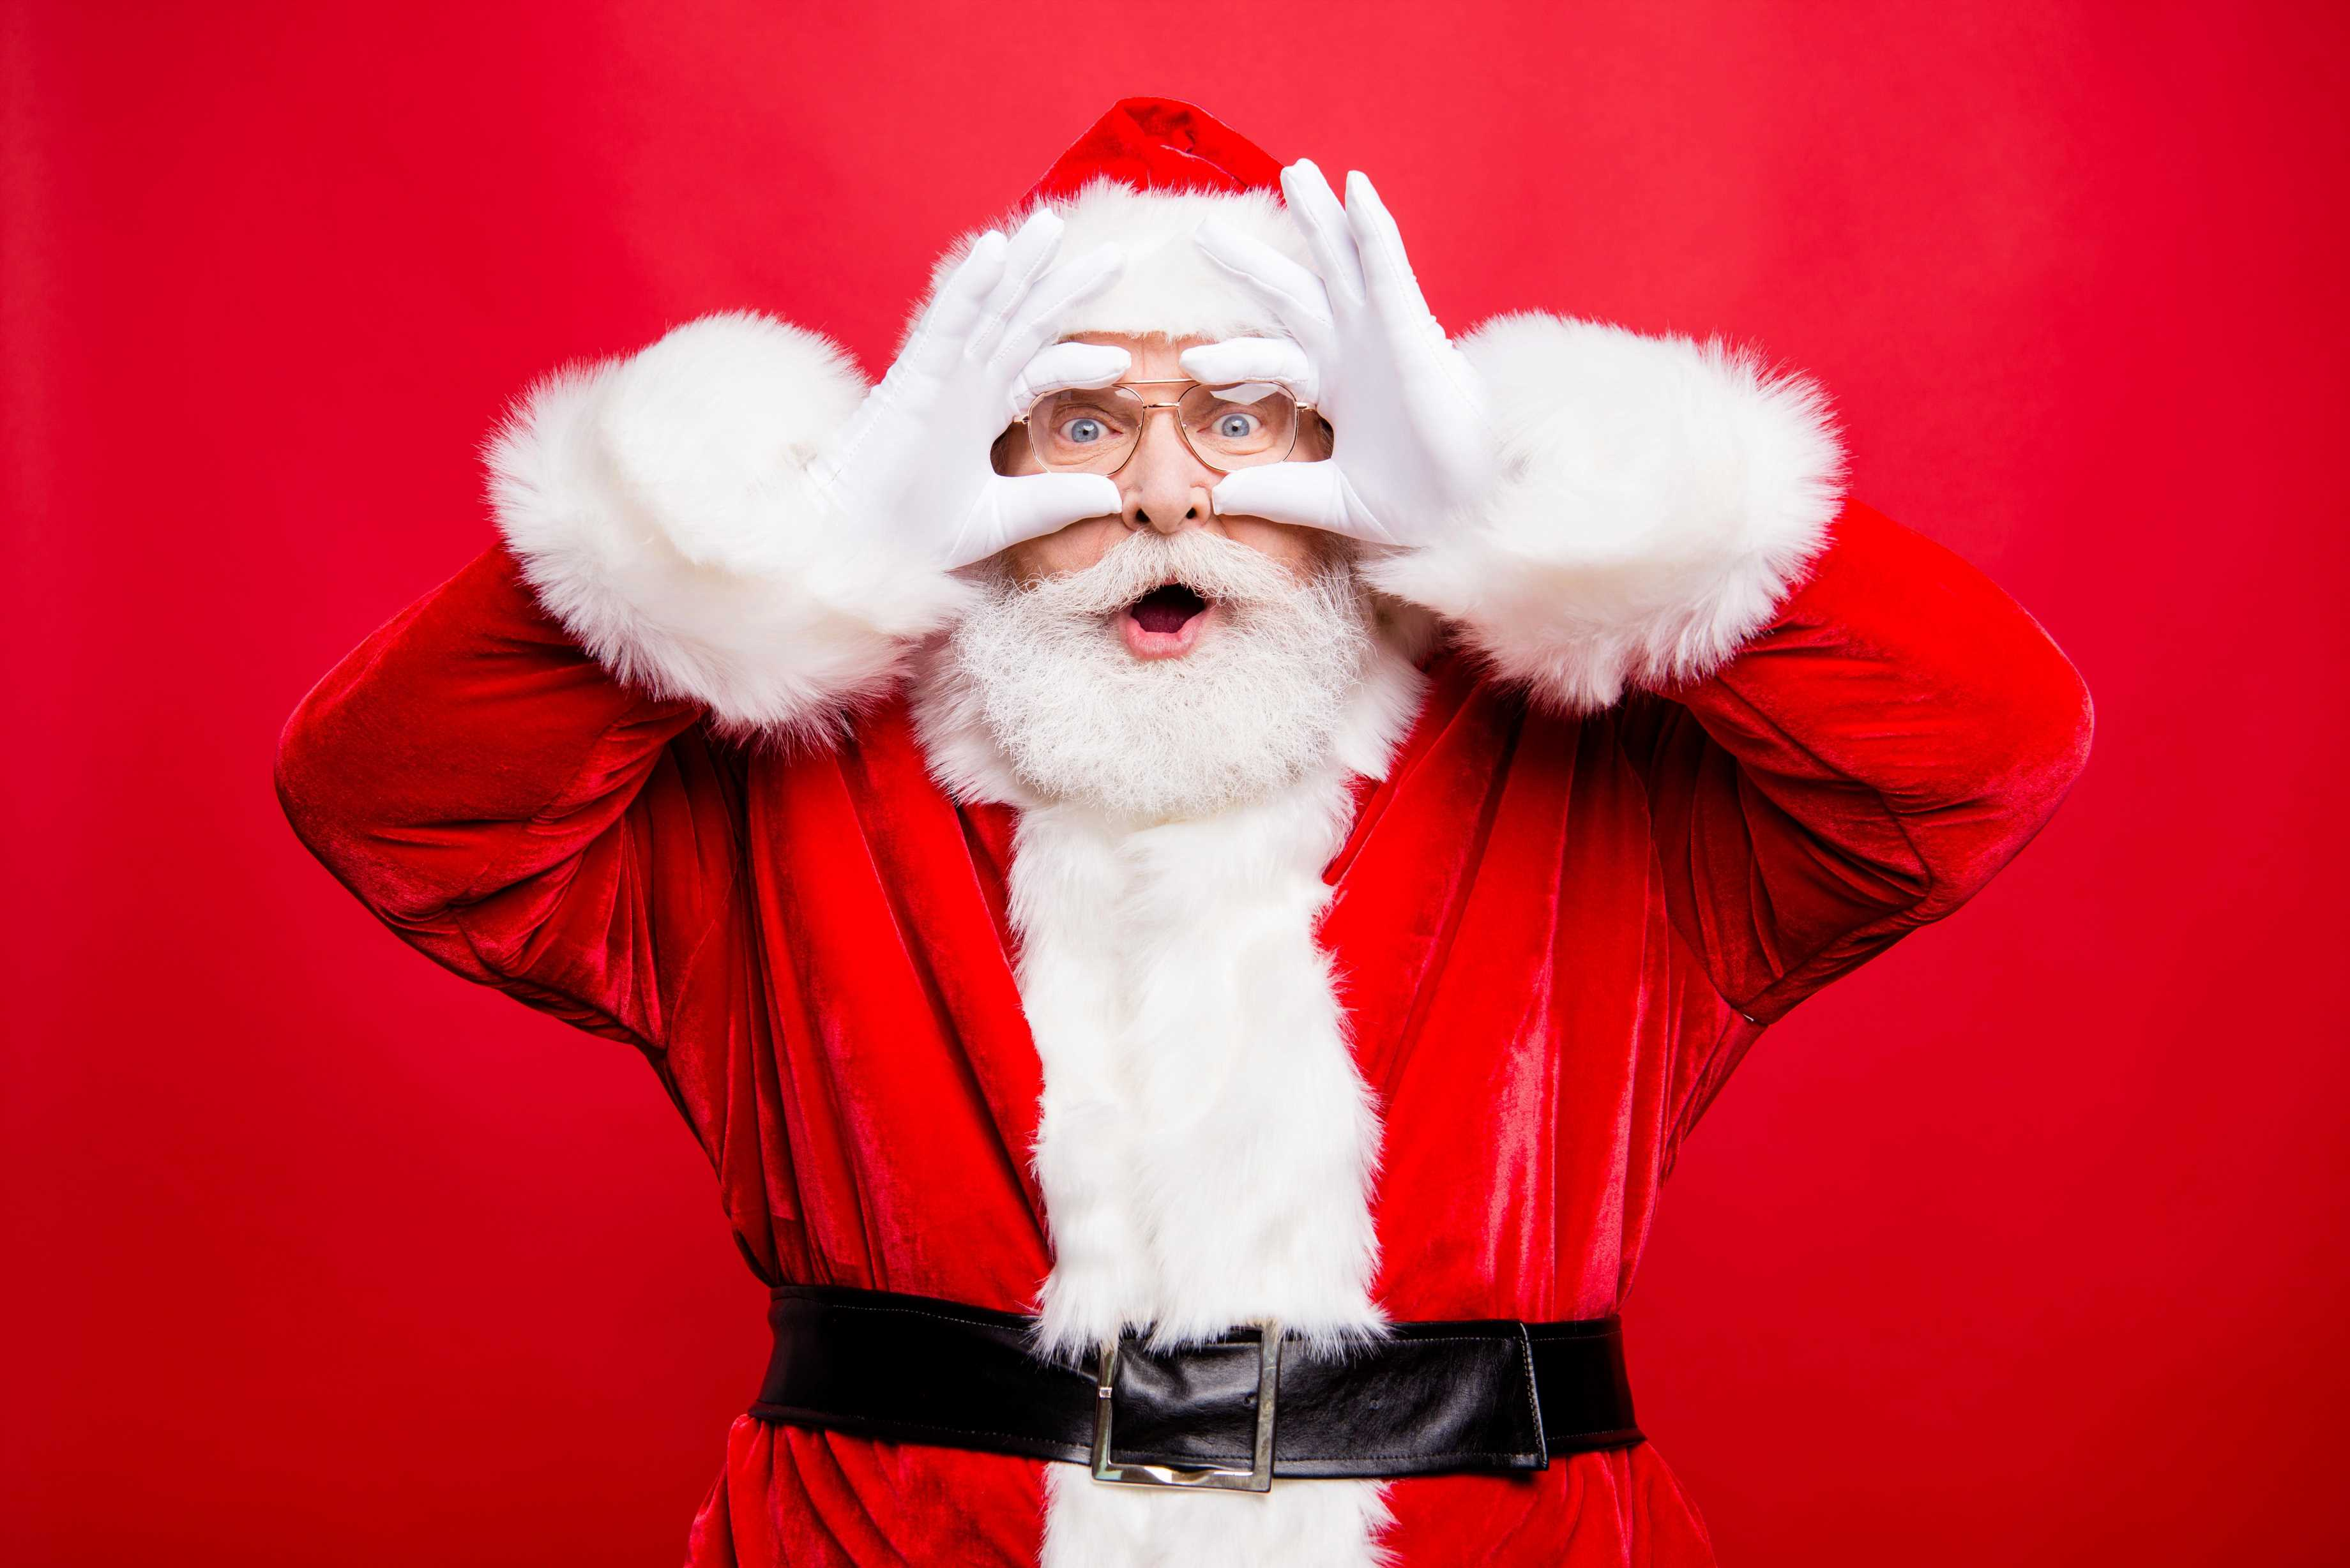 Santa Claus could get a gender neutral rebrand as part of effort to 'modernise' Christmas